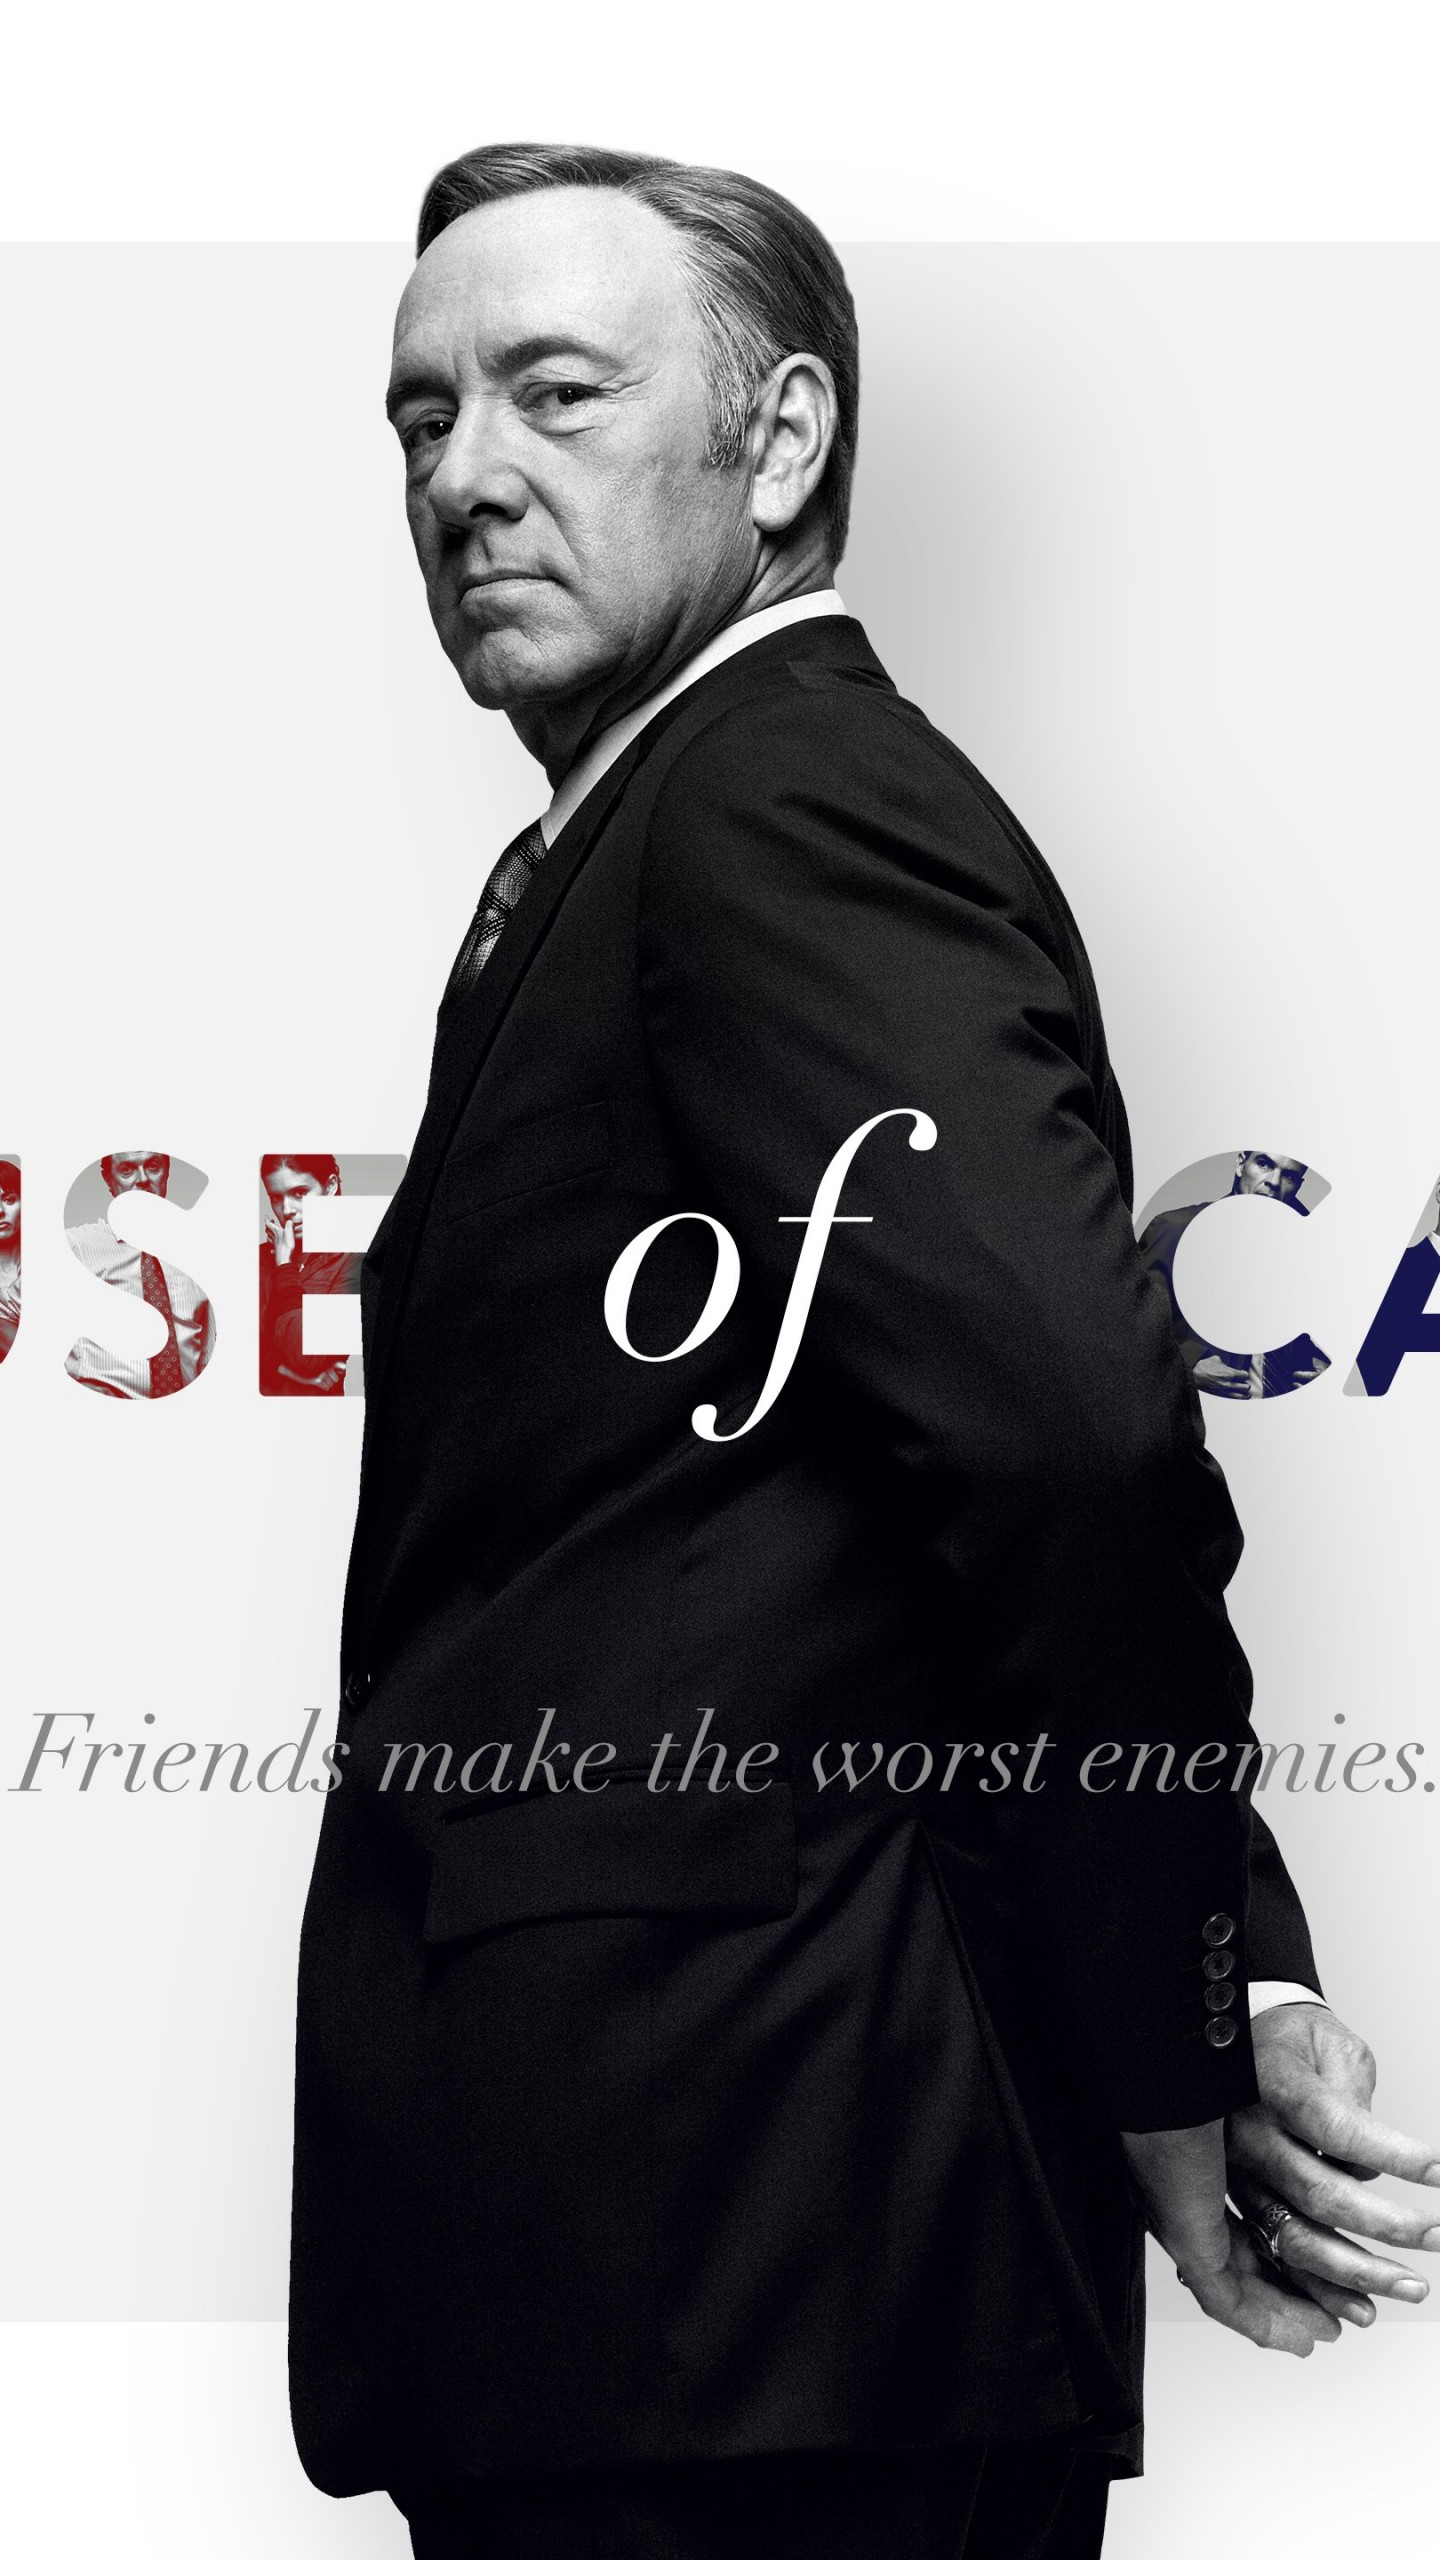 Frank Underwood - House of Cards Wallpaper for SAMSUNG Galaxy S6